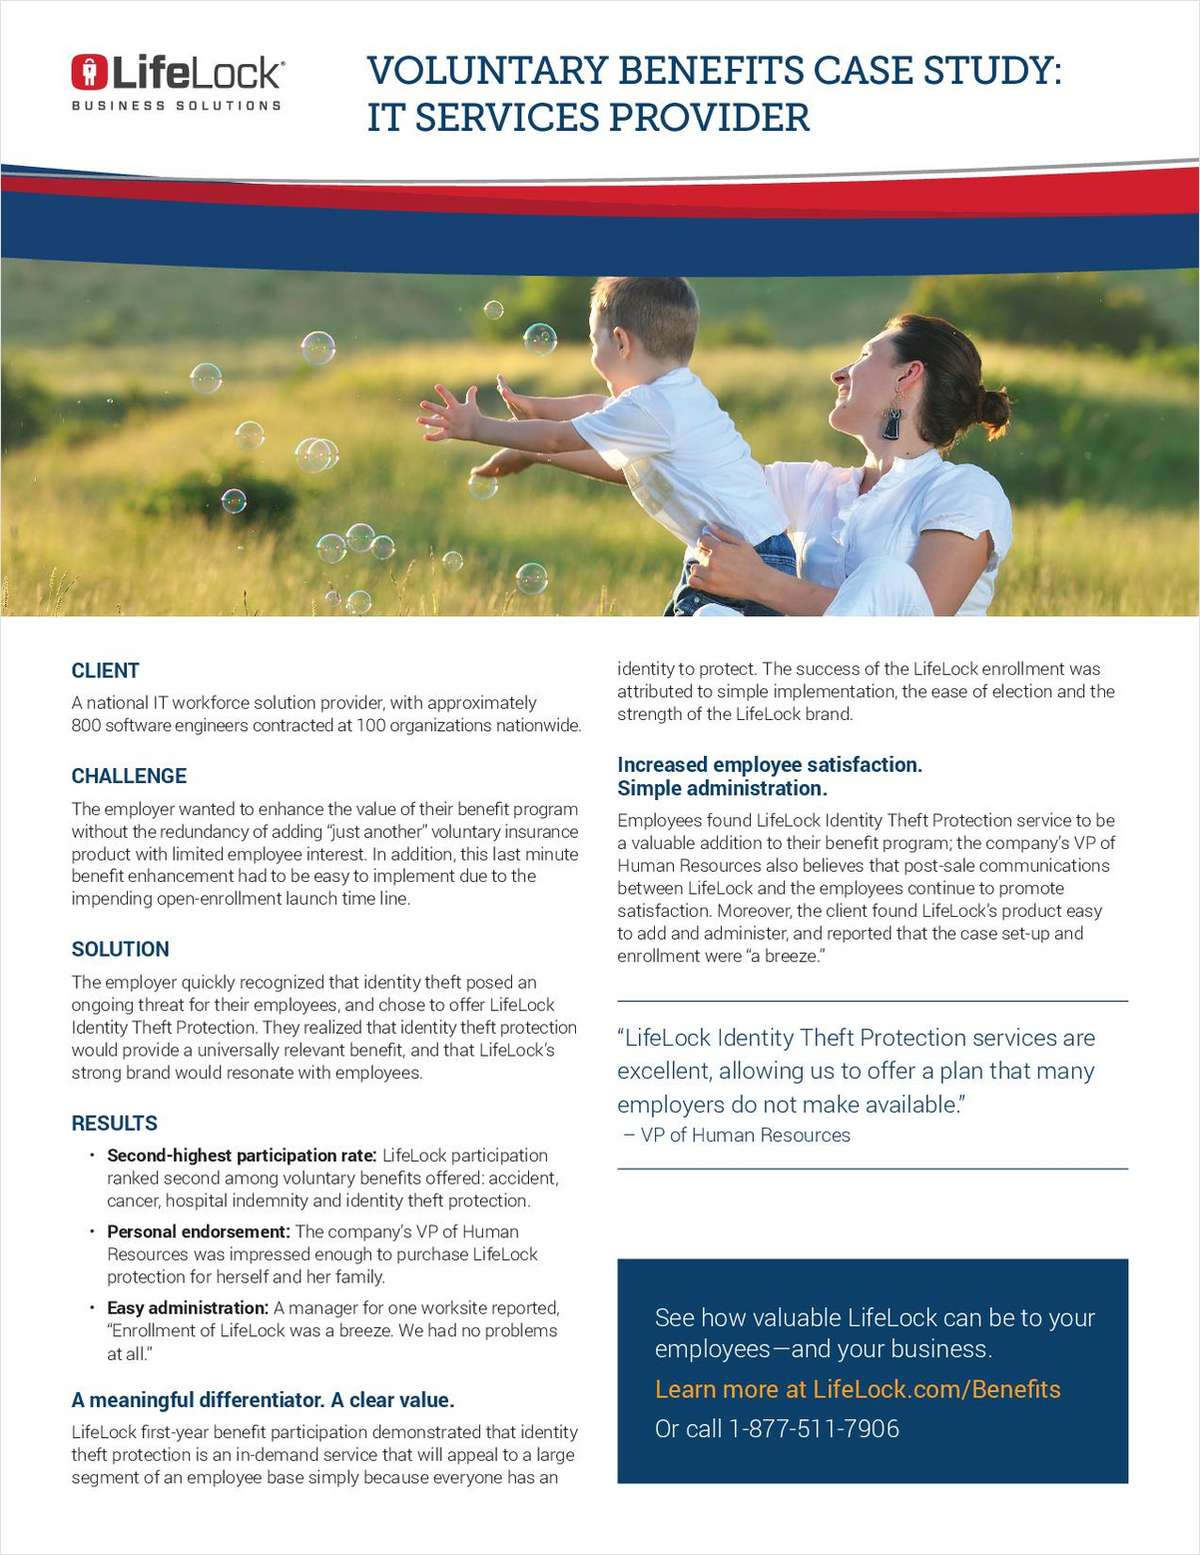 Voluntary Benefits Case Study: IT Services Provider